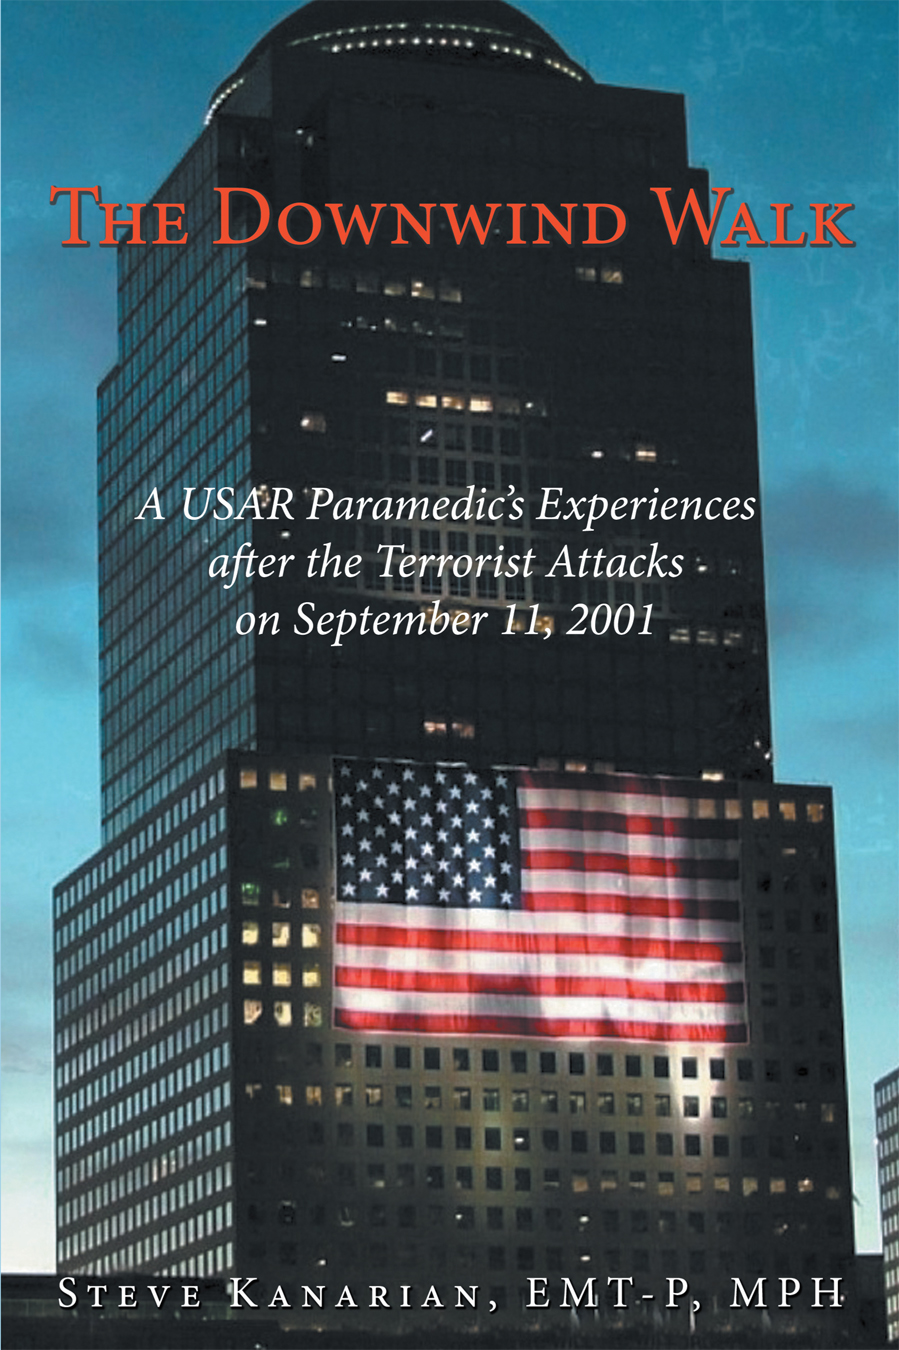 The Downwind Walk By: Steve Kanarian, EMT-P, MPH